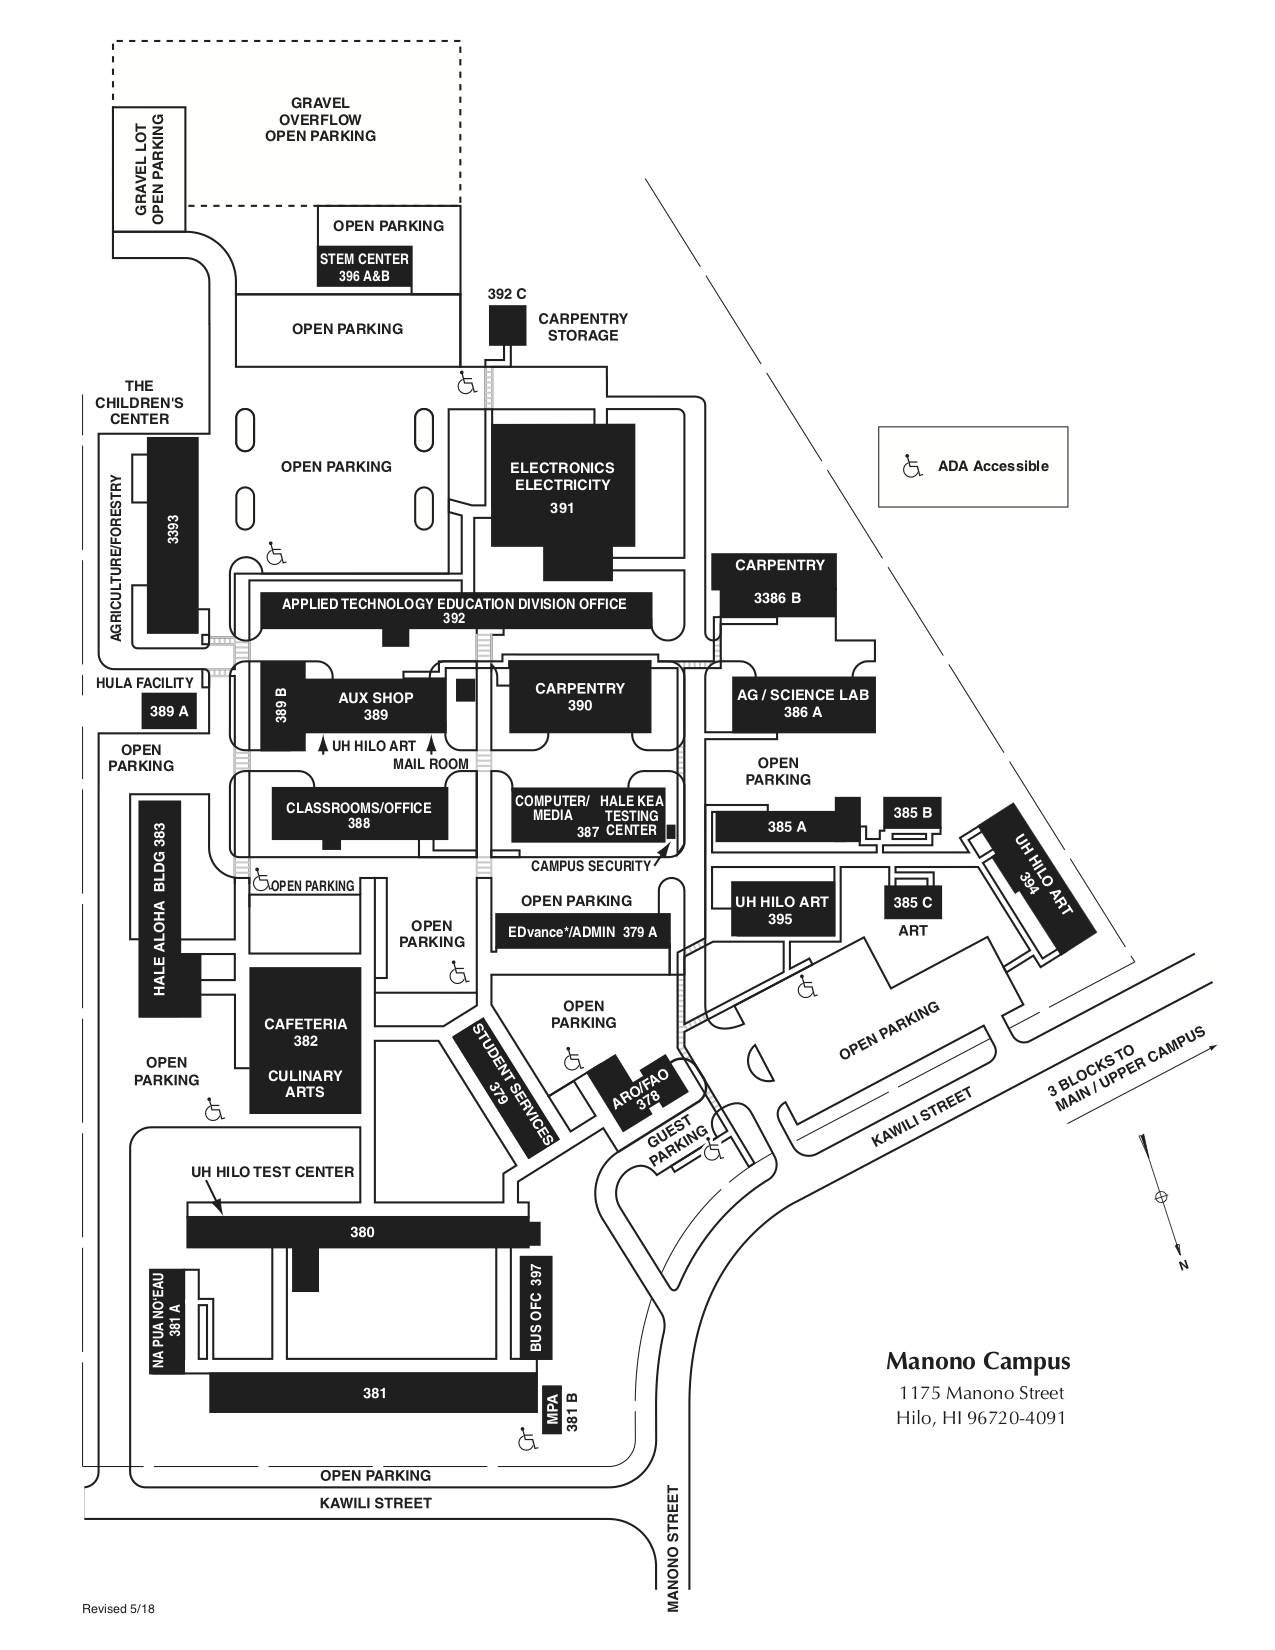 Map of the Manono Campus